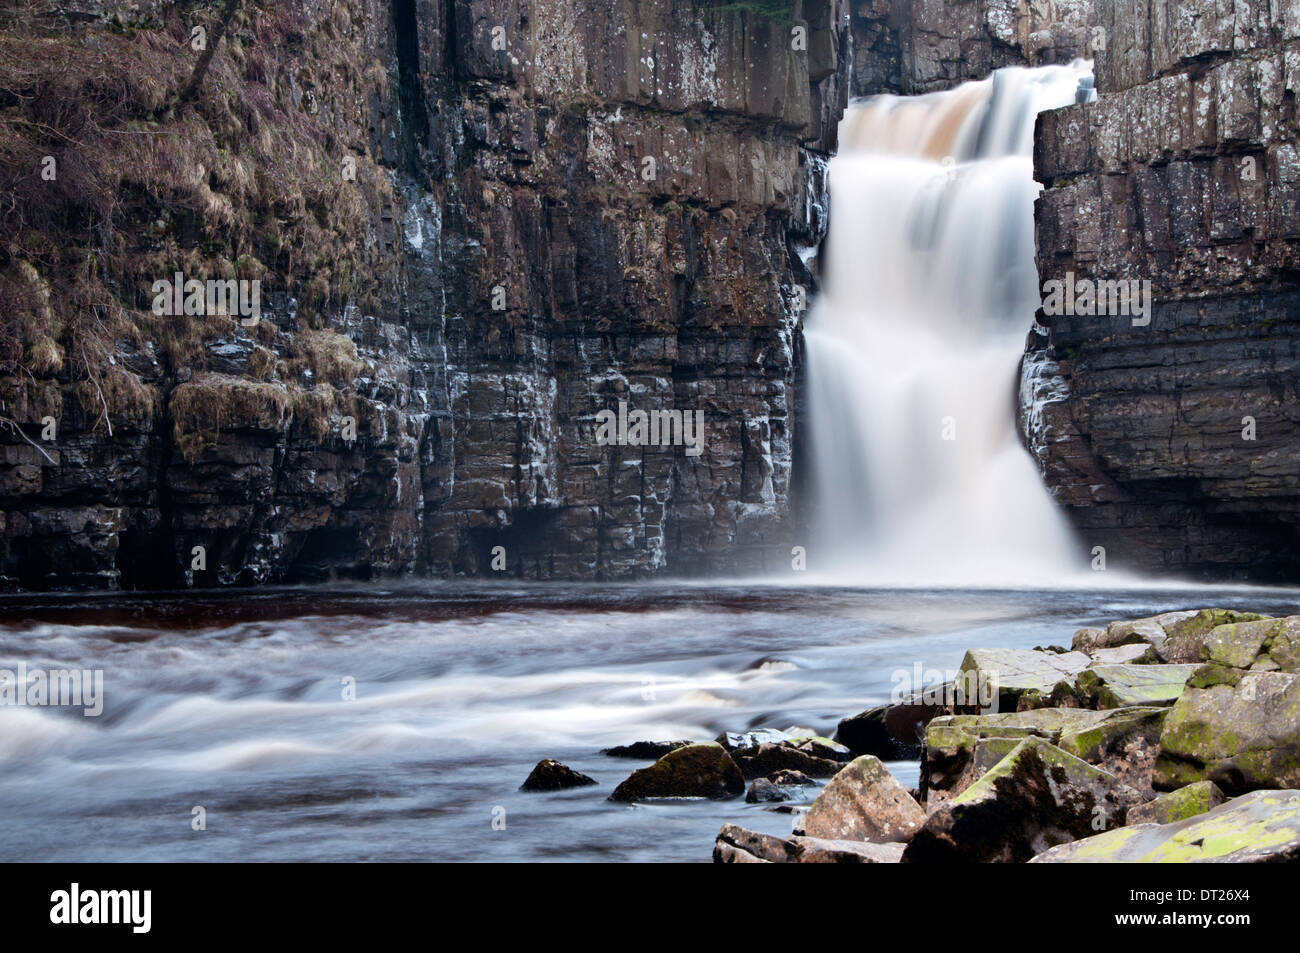 High Force Waterfall on the River Tees, near Middleton-in-Teesdale, Teesdale, County Durham, England, UK - Stock Image